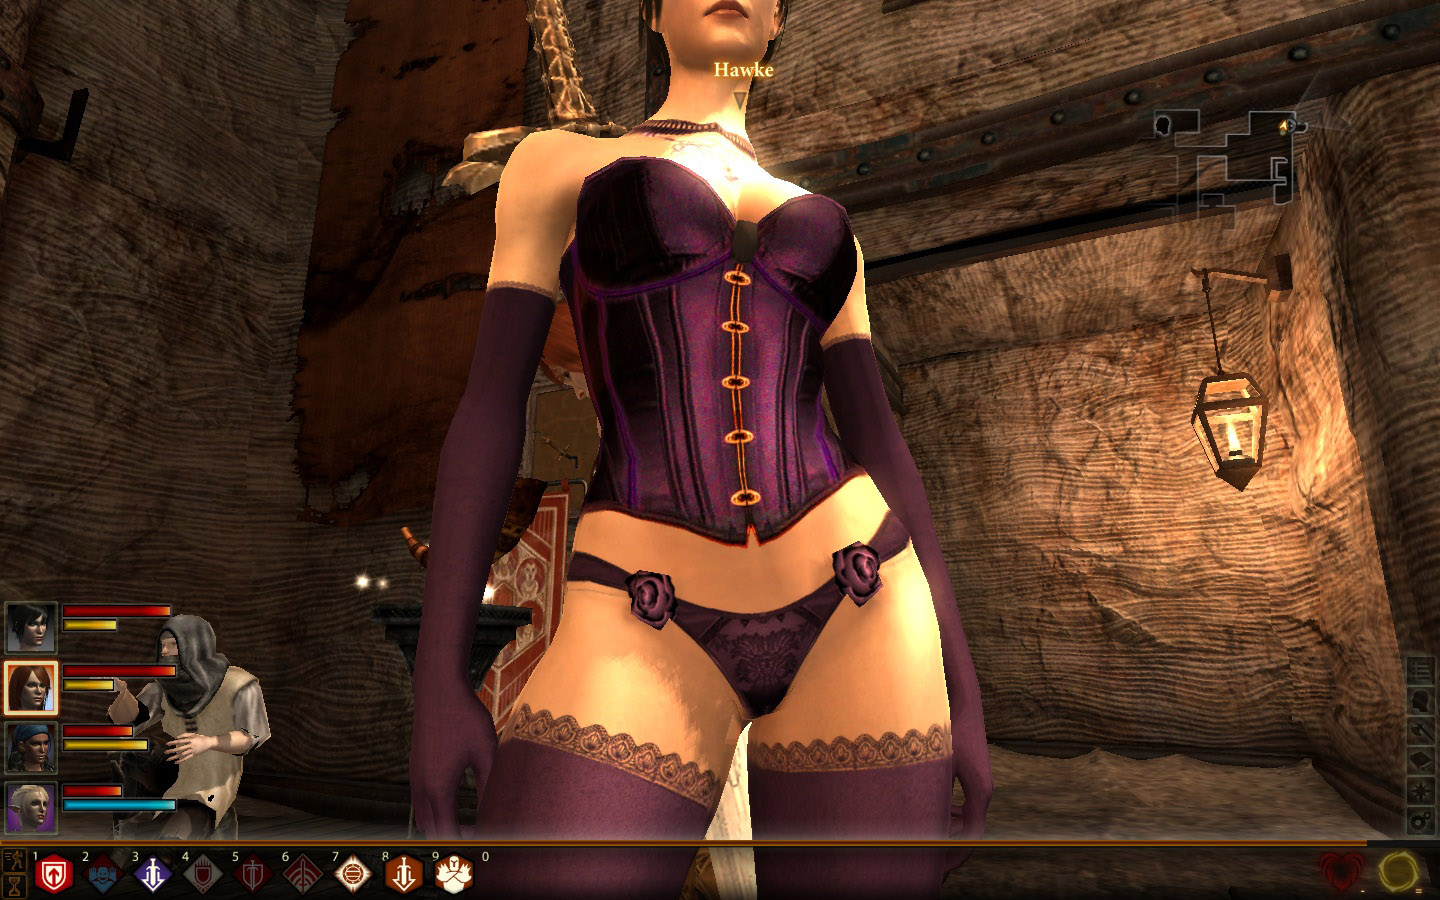 Dragon age origins nud mod exposed images